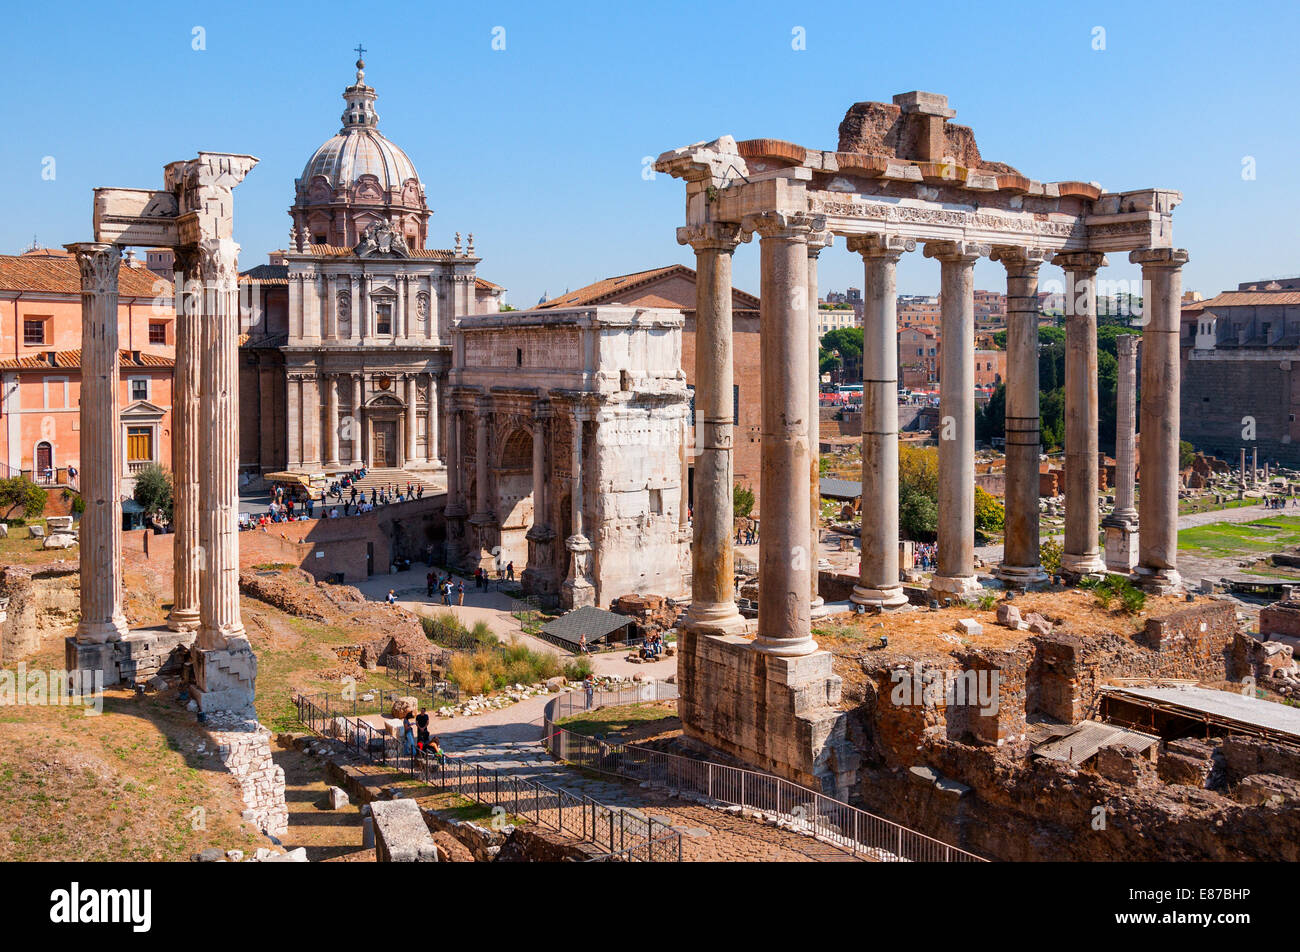 The Roman Forum, a landmark site with the ruins of ancient ...